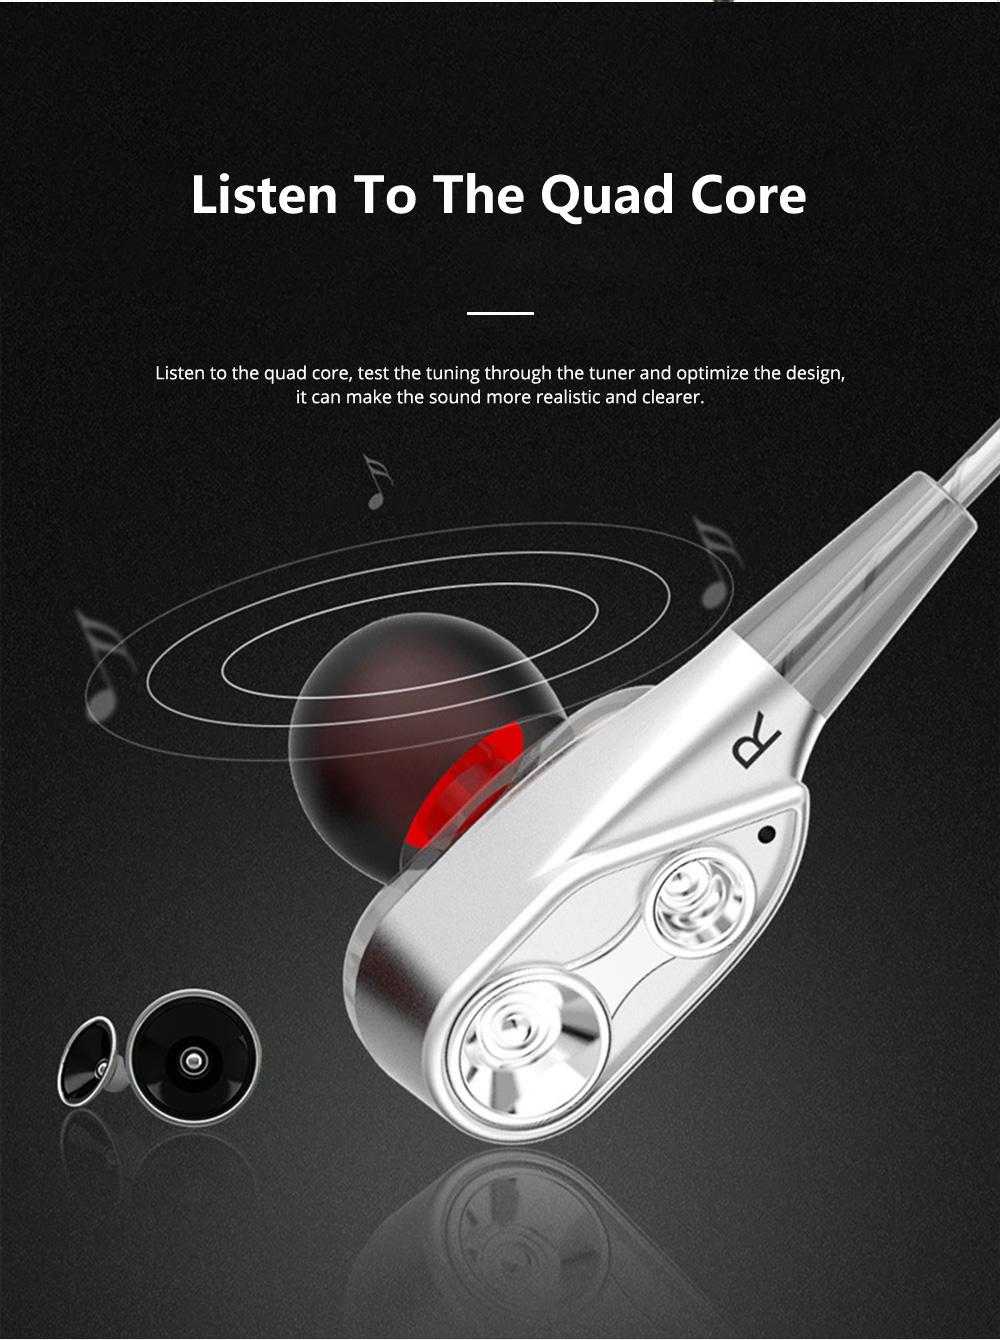 HIFI Heavy Bass Metal Sports Headsets Wired Mobile Phone In Ear Earphone Type C HD Voice Headphones For Cell Phone MP3 Player 5